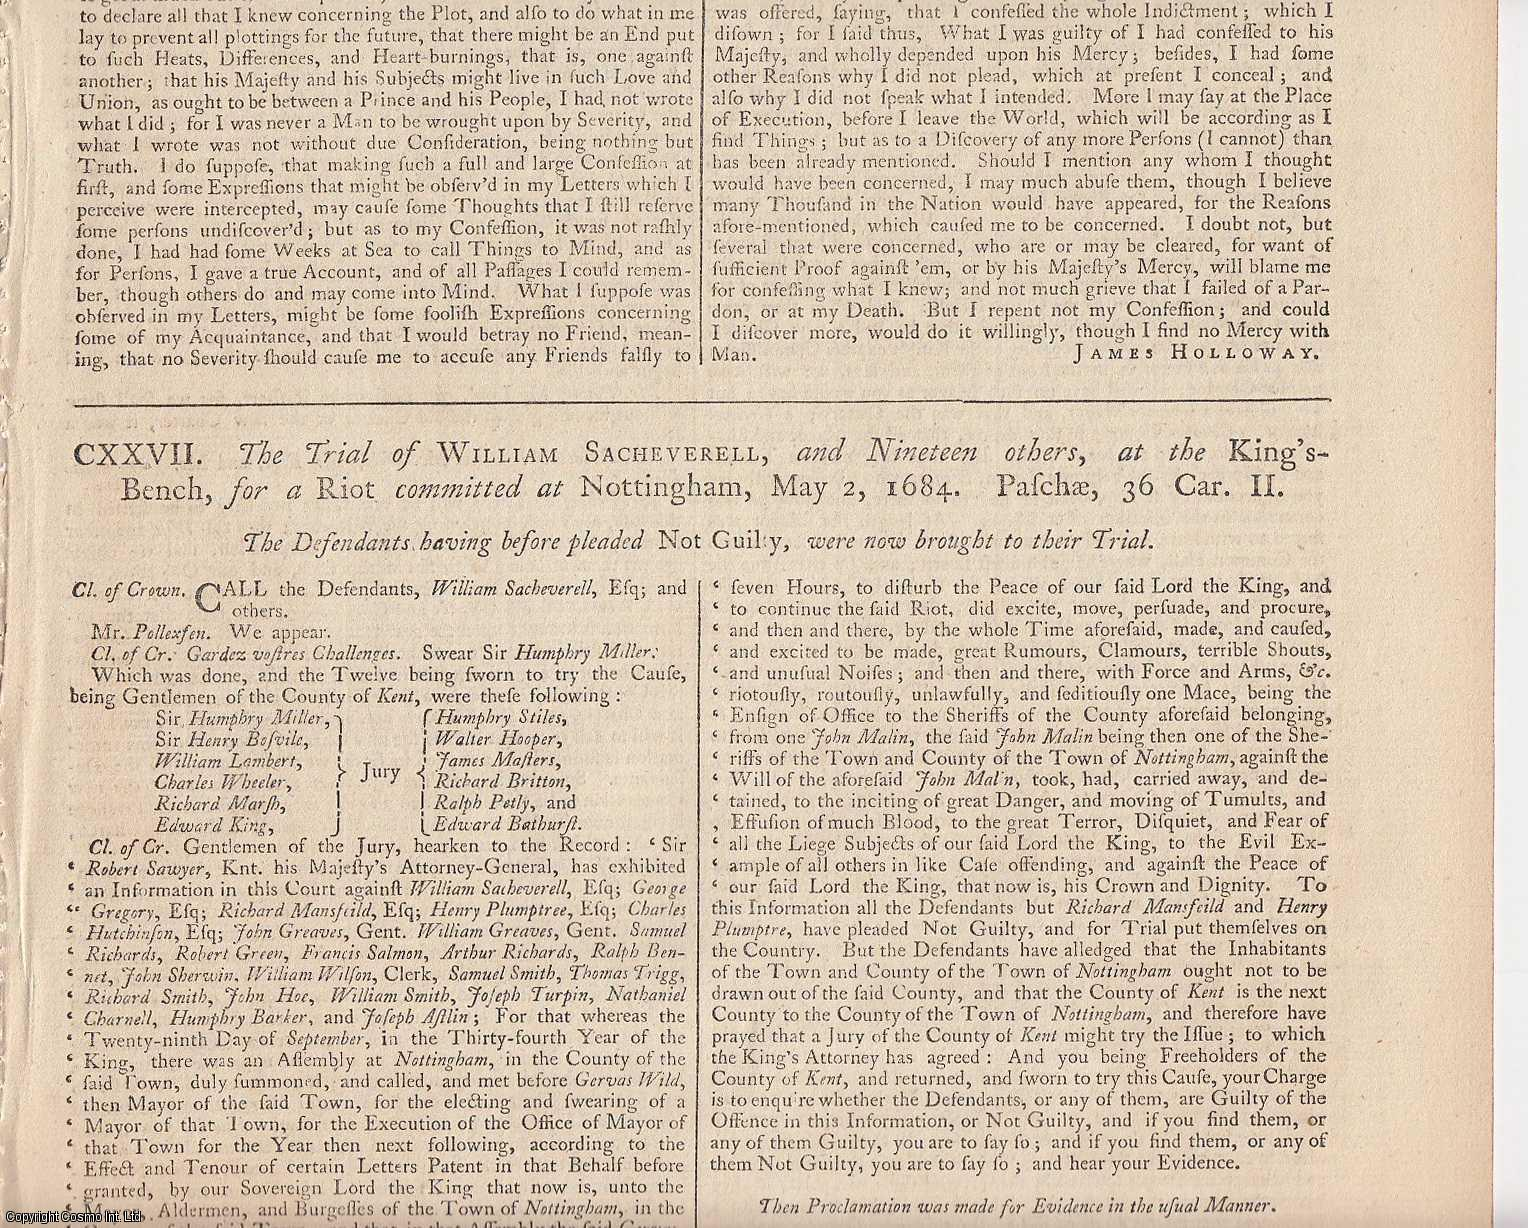 NOTTINGHAM RIOTS.  The Trial of William Sacheverell, and Nineteen others, at the King's Bench, for a Riot committed at Nottingham, May 2 1684. ALONG WITH The Case of the Corporation of Nottingham, as it was stated by the late William Sacheverell, of Barton, Esq., [Trial].